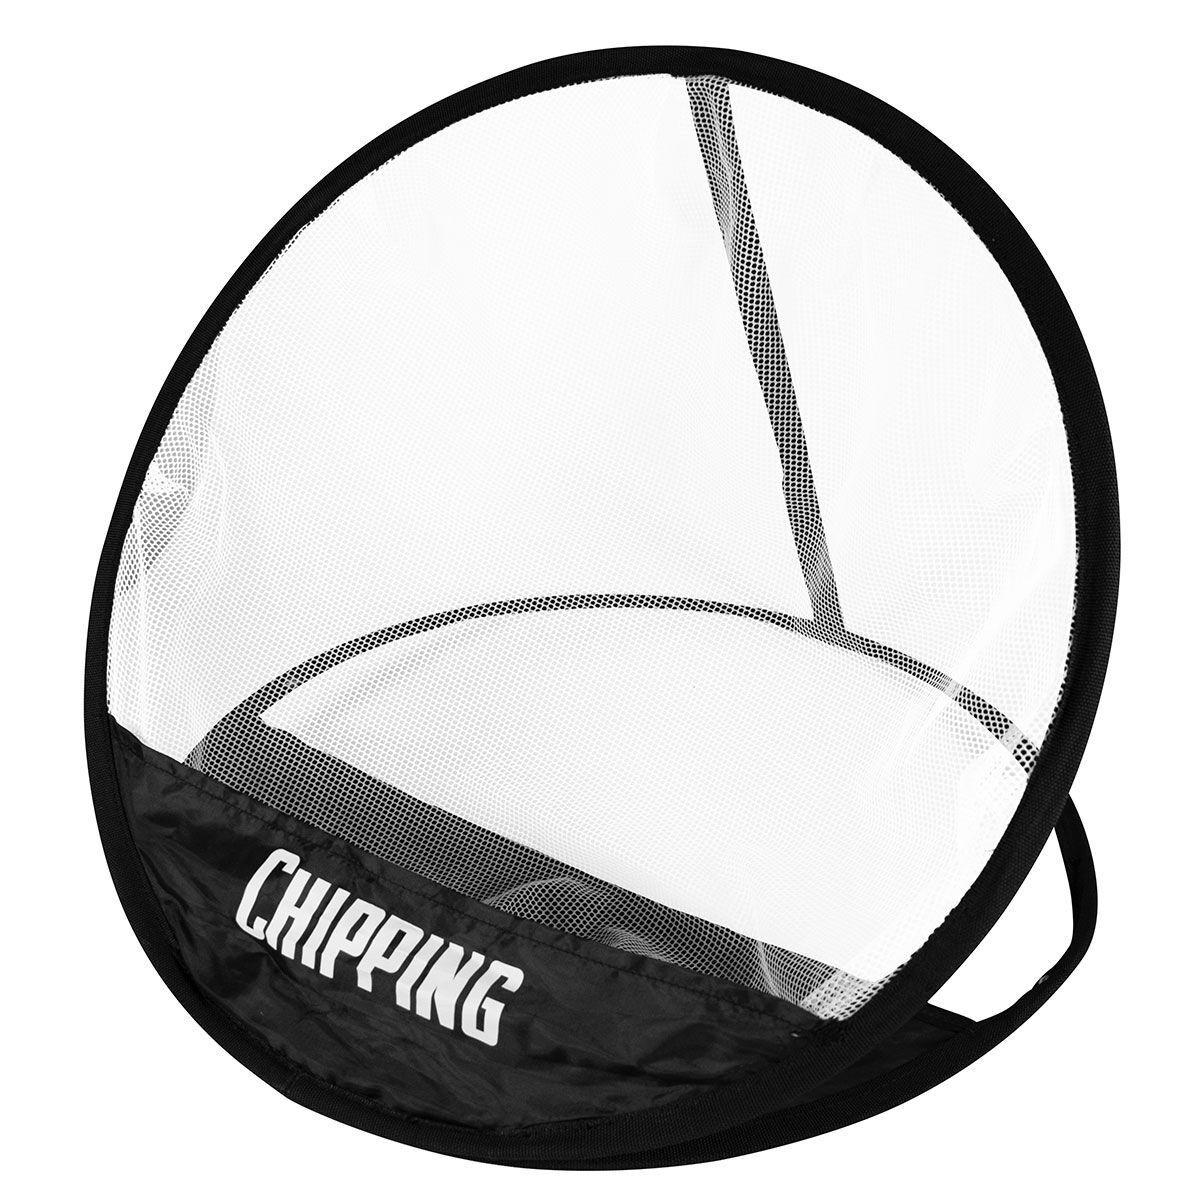 Pure 2 Improve Chipping Net, Male, One size   American Golf